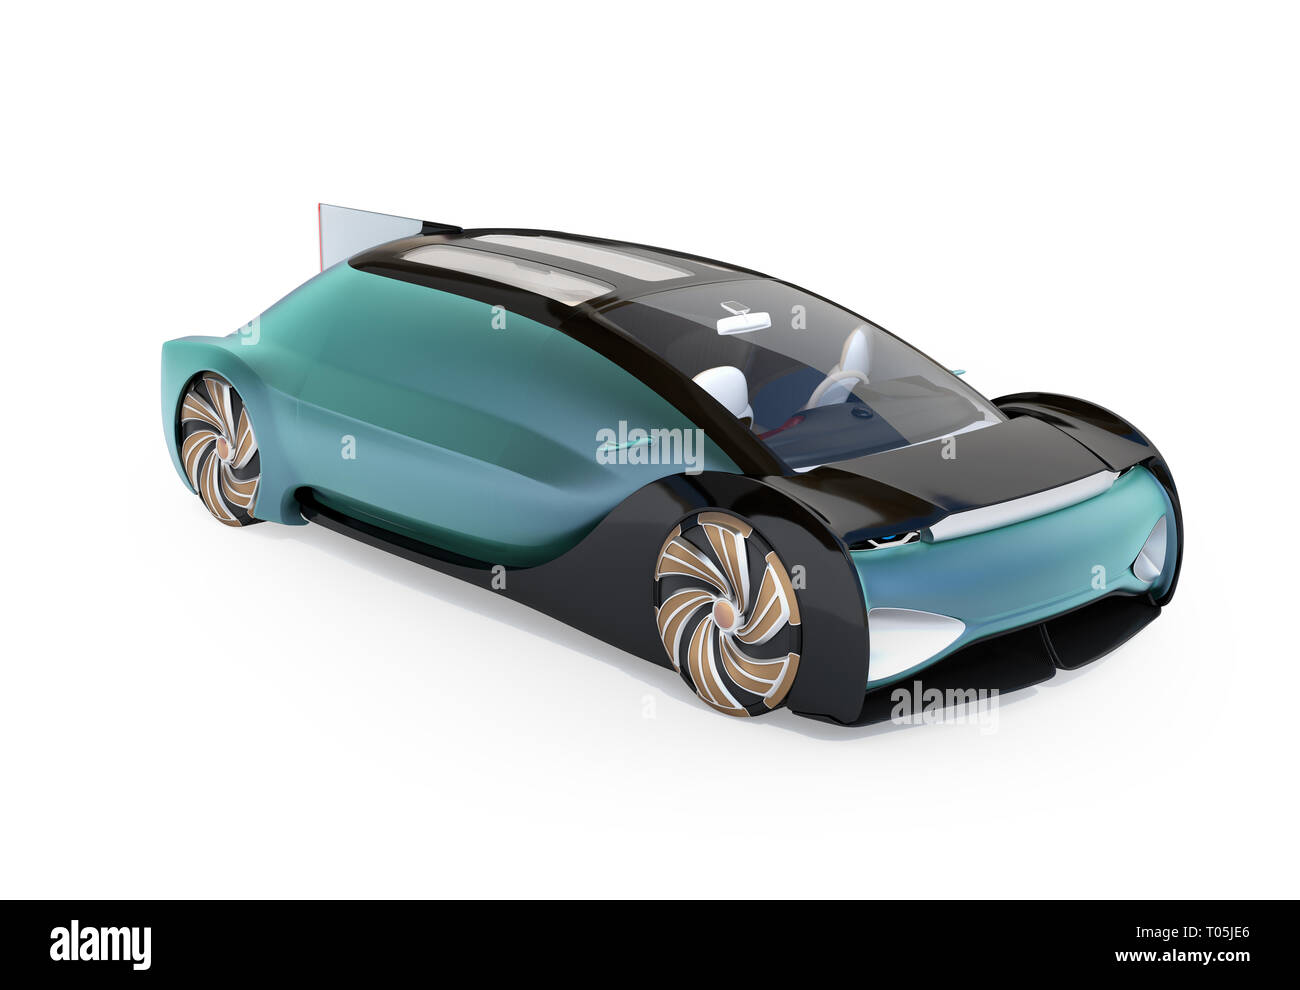 Self driving electric car isolated on white background. Original design. 3D rendering image. - Stock Image